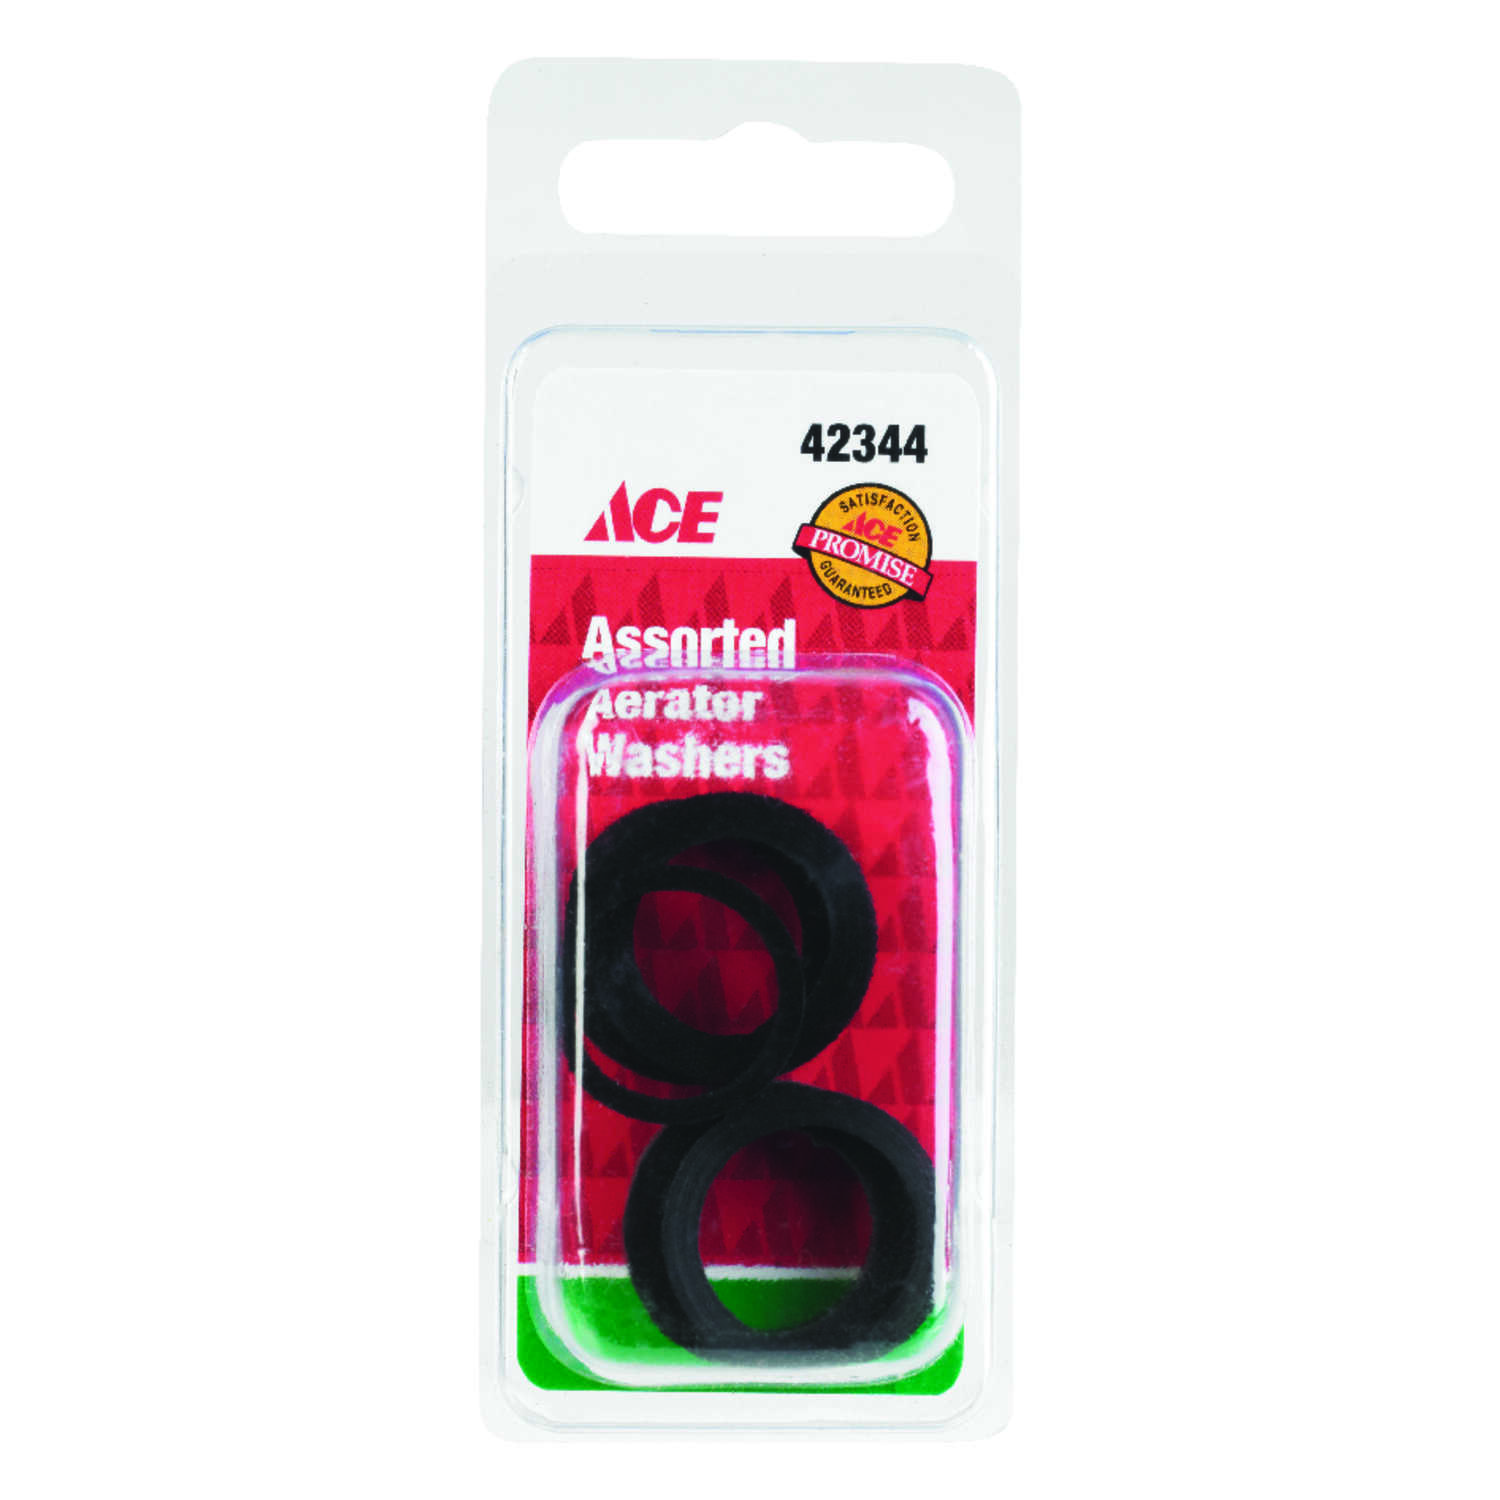 Ace Assorted In Dia Rubber Faucet Aerator Washer 5 Pk